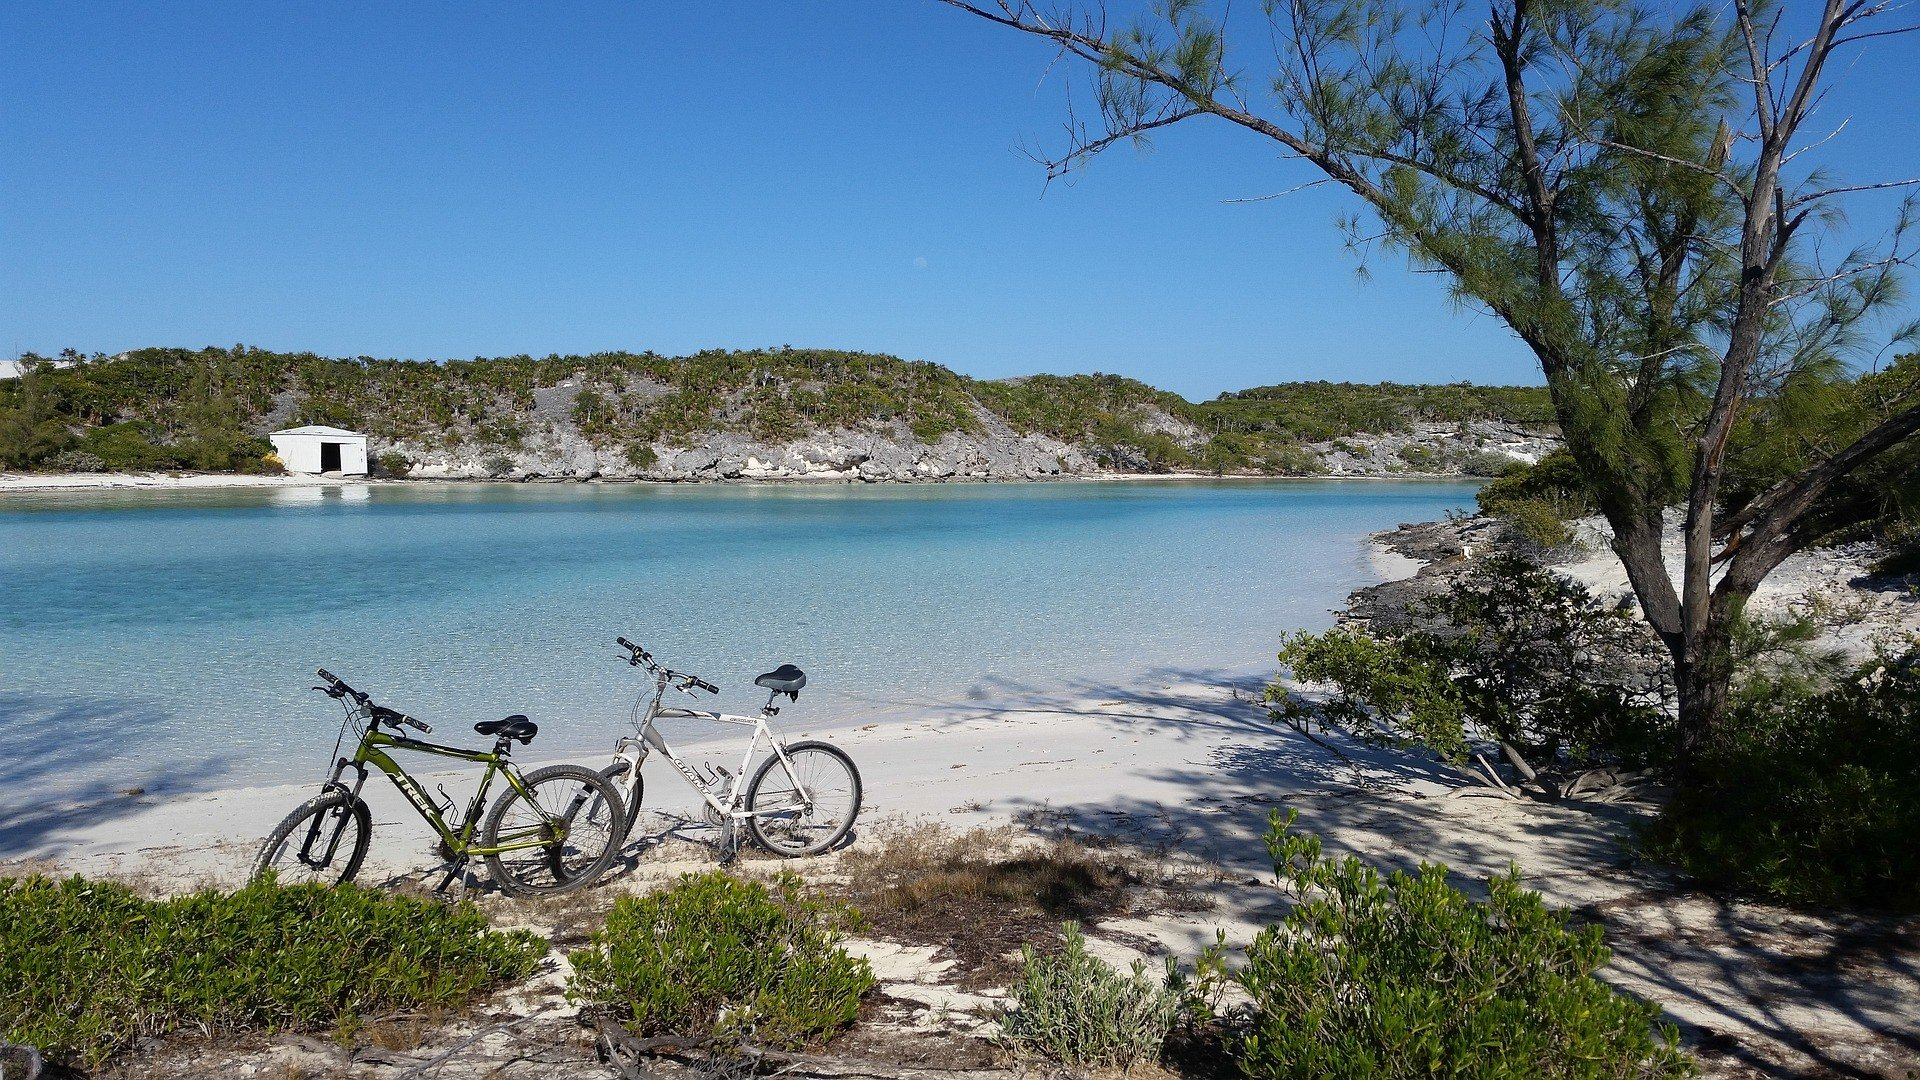 Bikes on a beach in the Bahamas